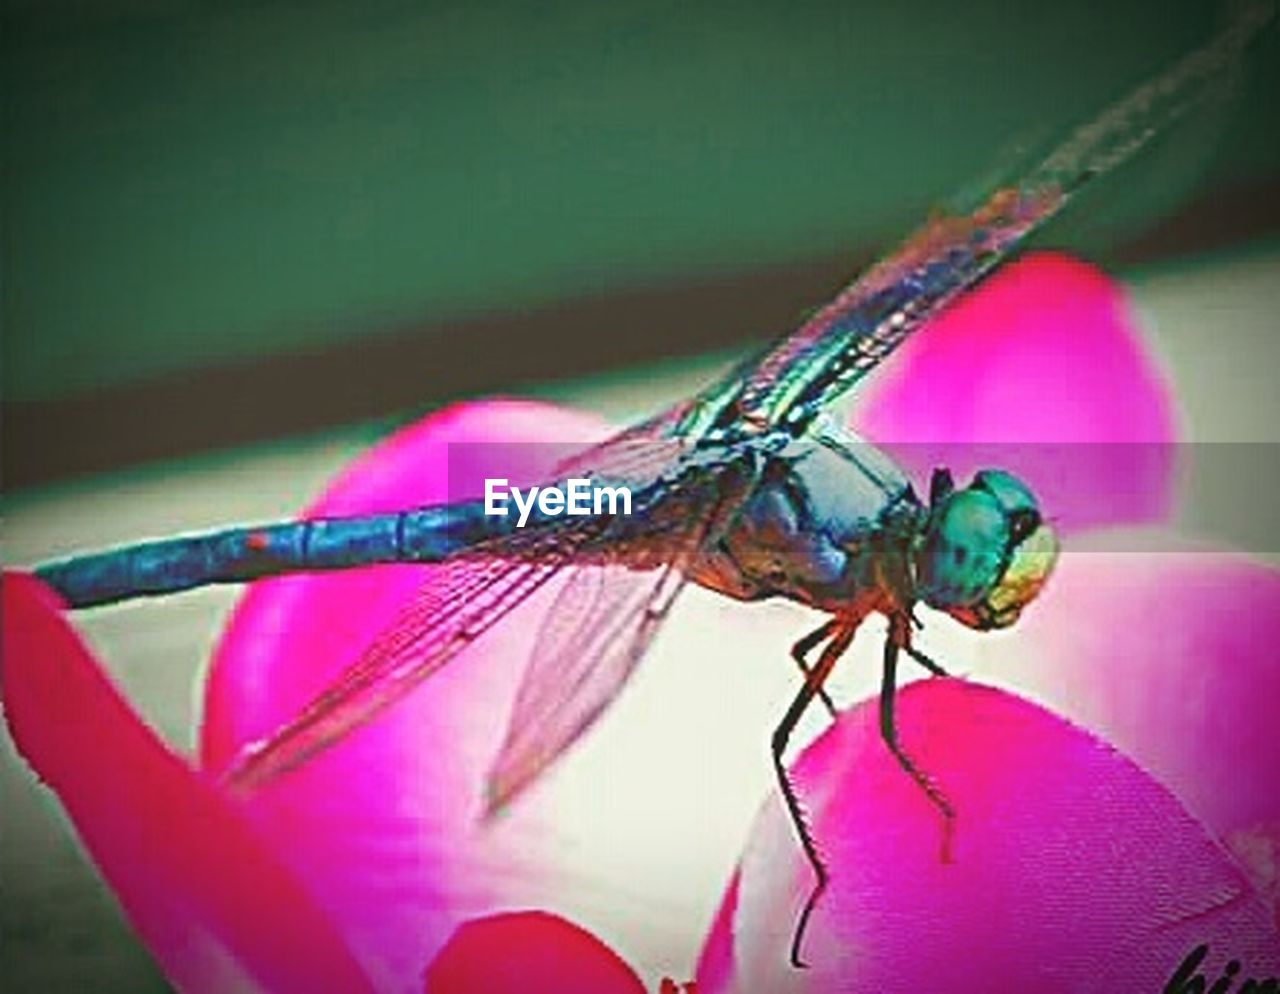 insect, animal themes, one animal, animals in the wild, close-up, animal wildlife, no people, damselfly, day, outdoors, nature